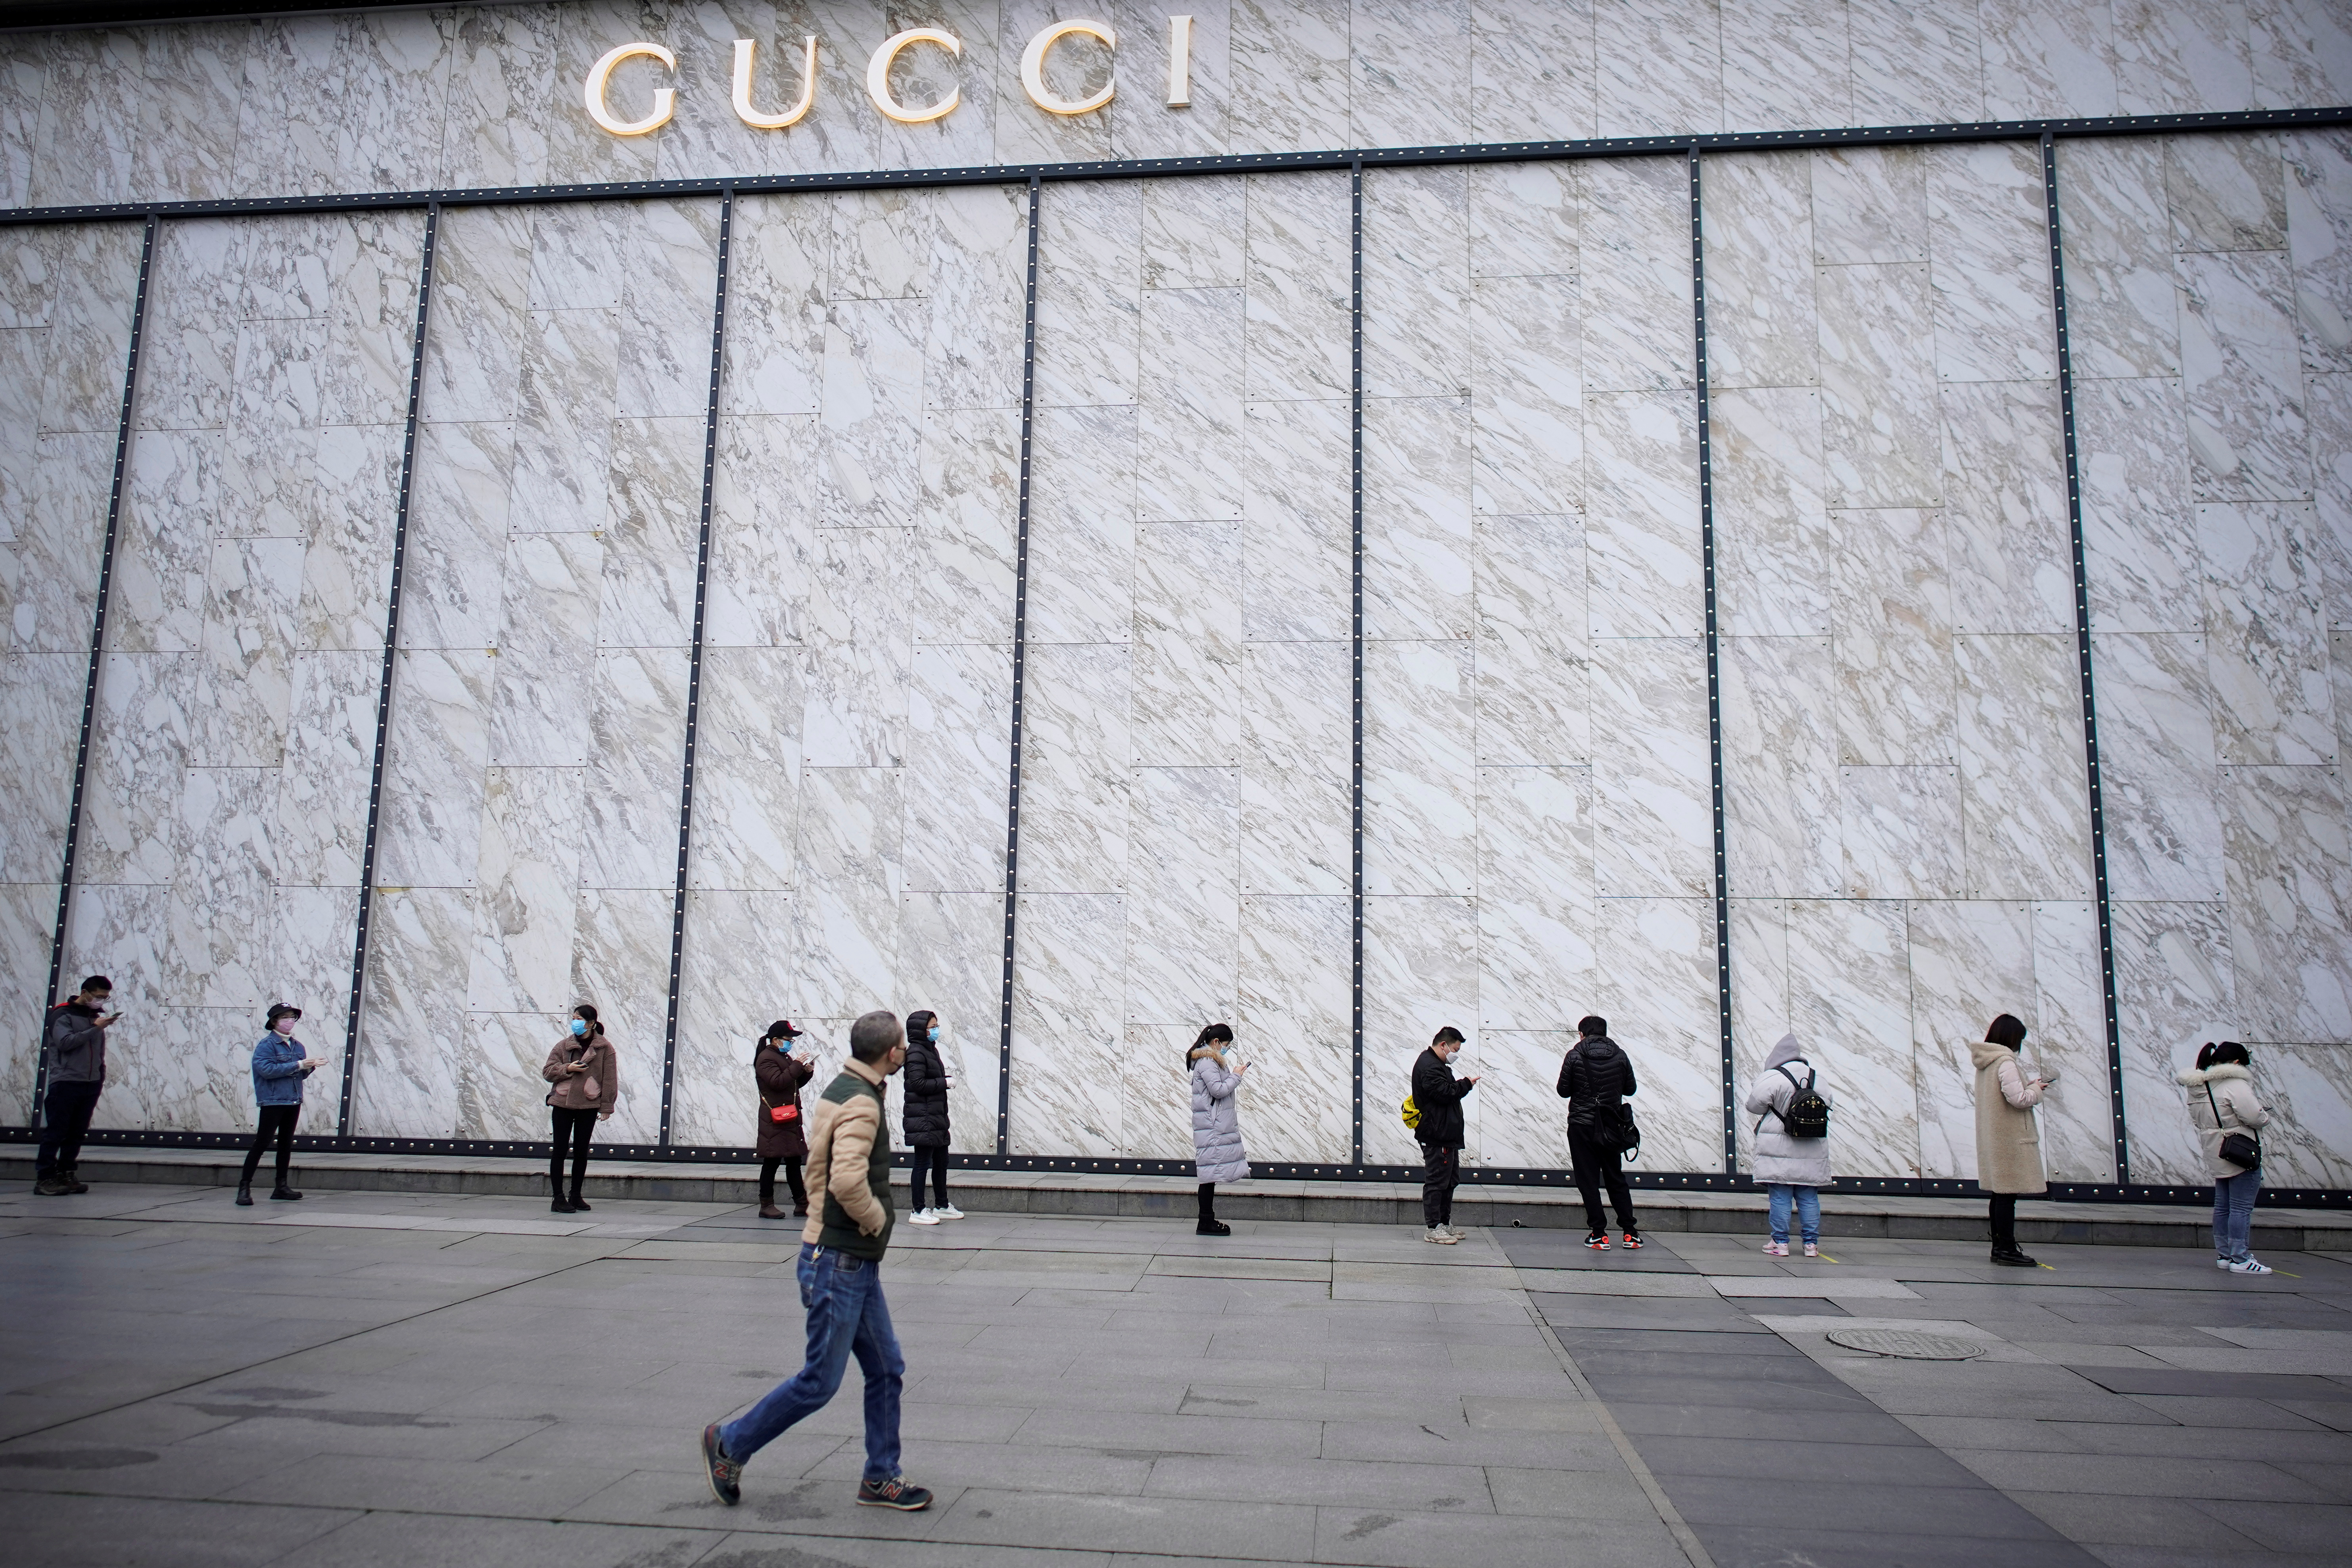 People wearing face masks line up to enter the shopping center outside the Gucci shop in Wuhan